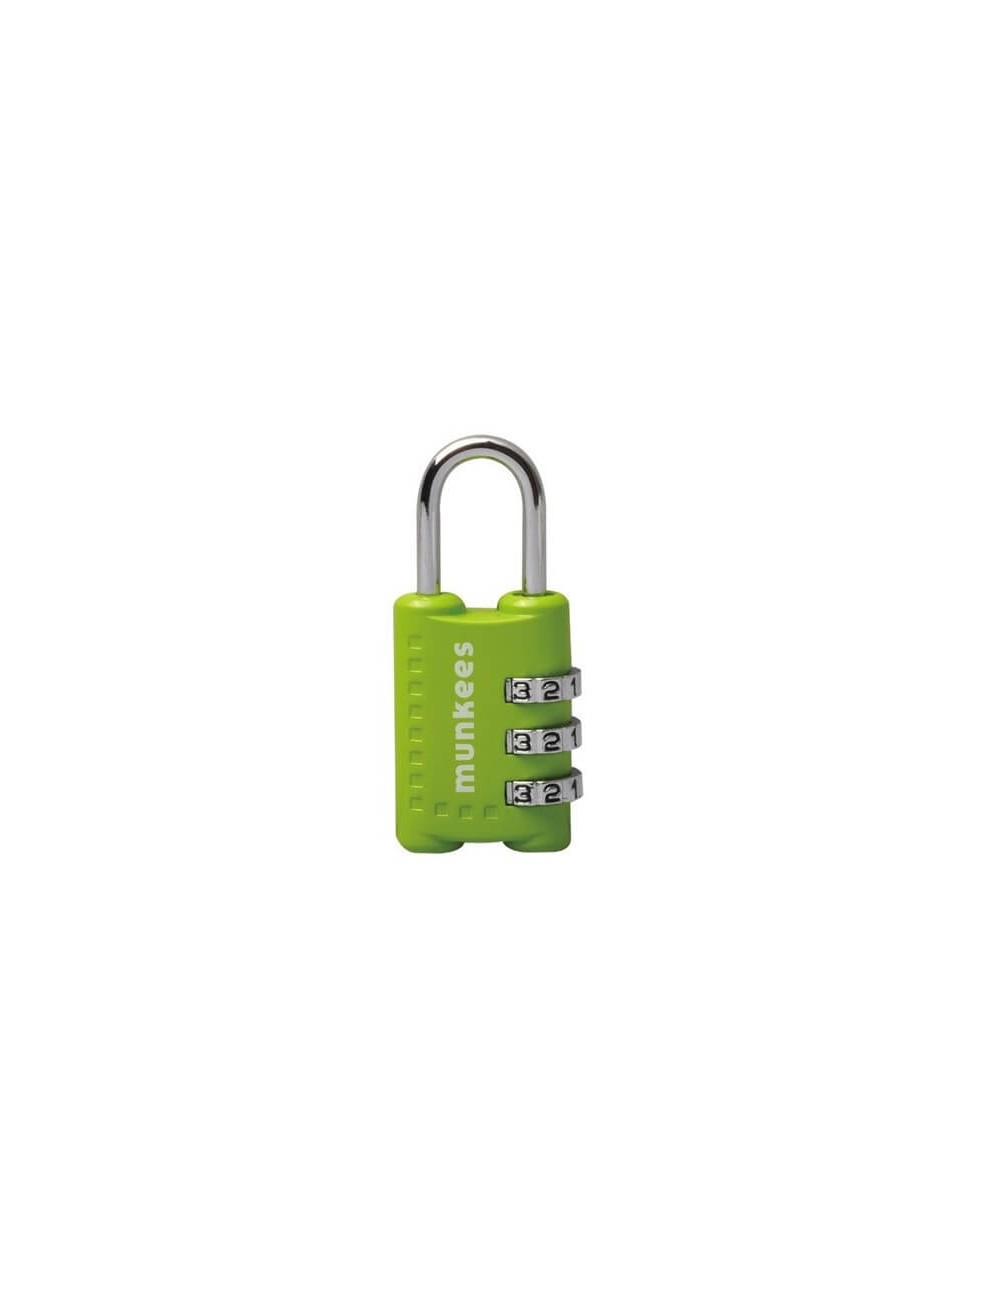 Munkees kofferslot met cijfercombinatie Combination Lock 1 - Oranje